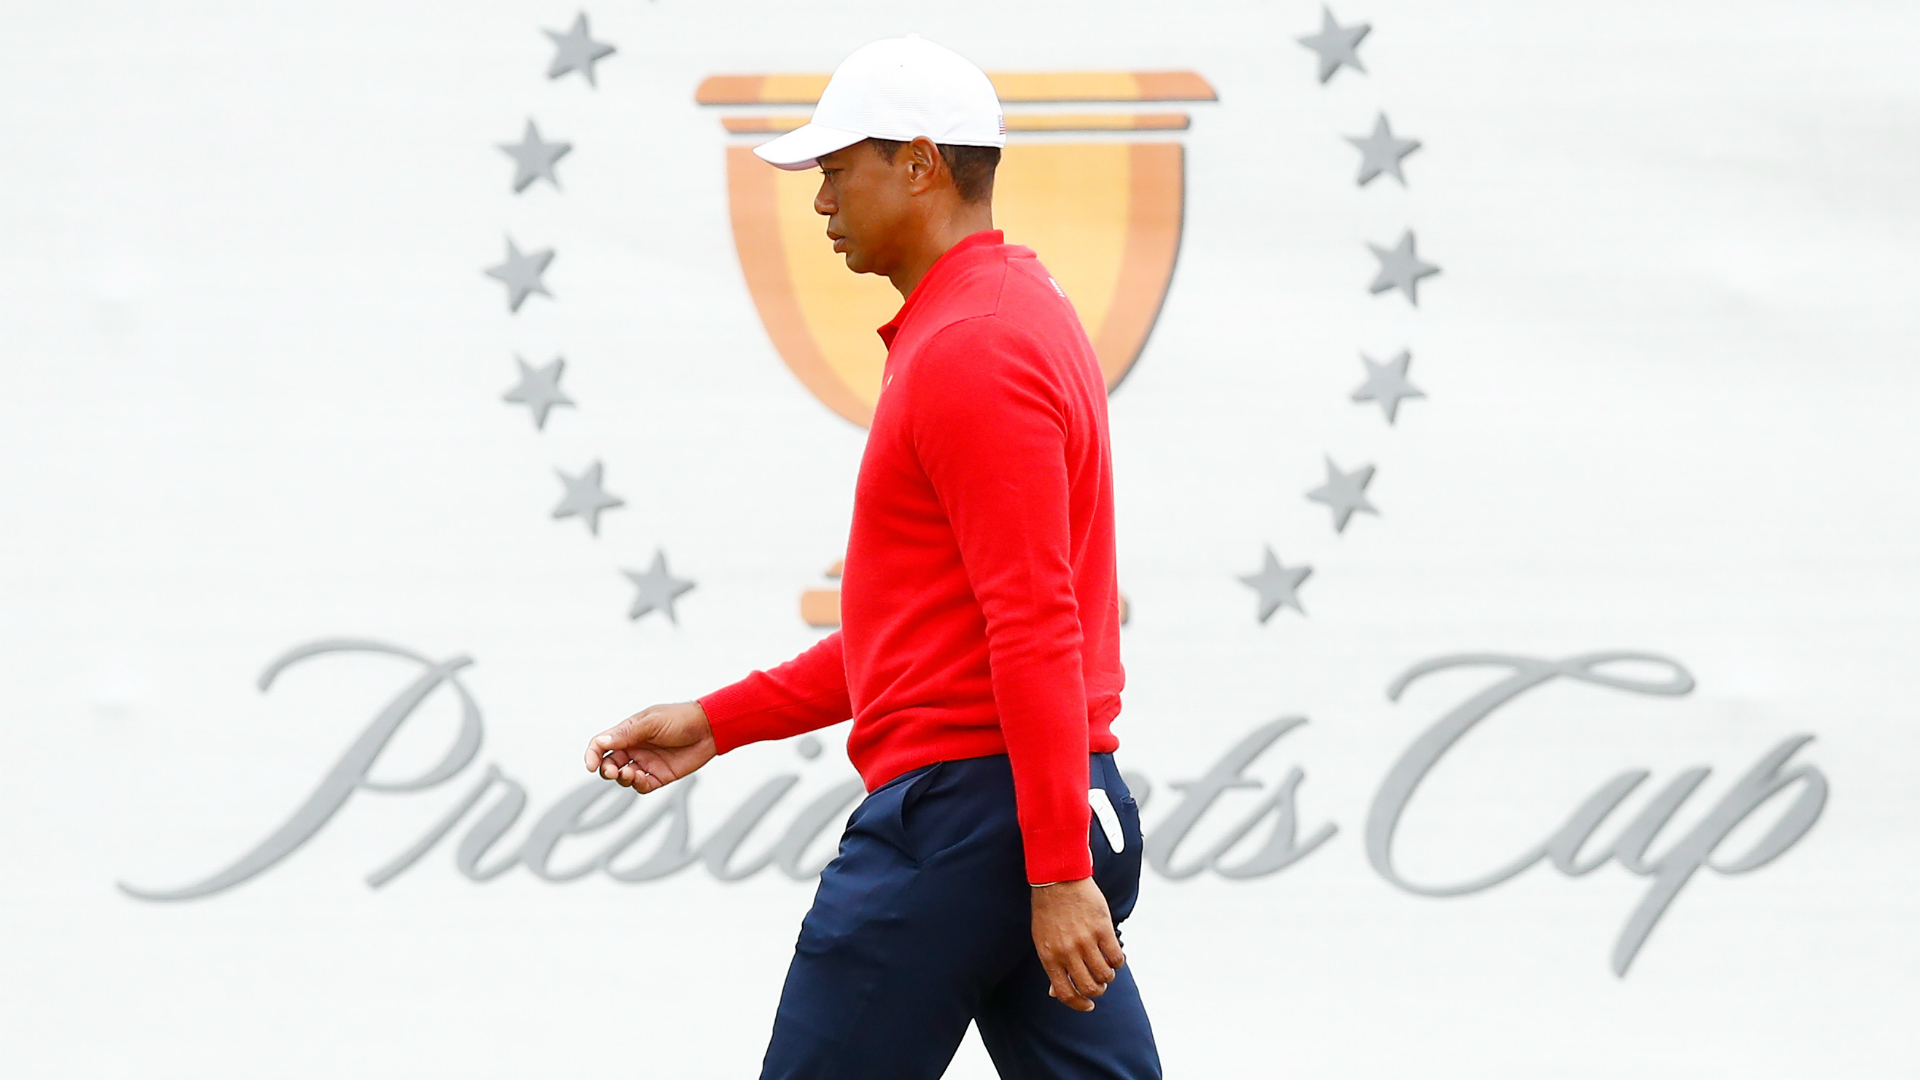 Presidents Cup 2019: Tiger Woods breaks record